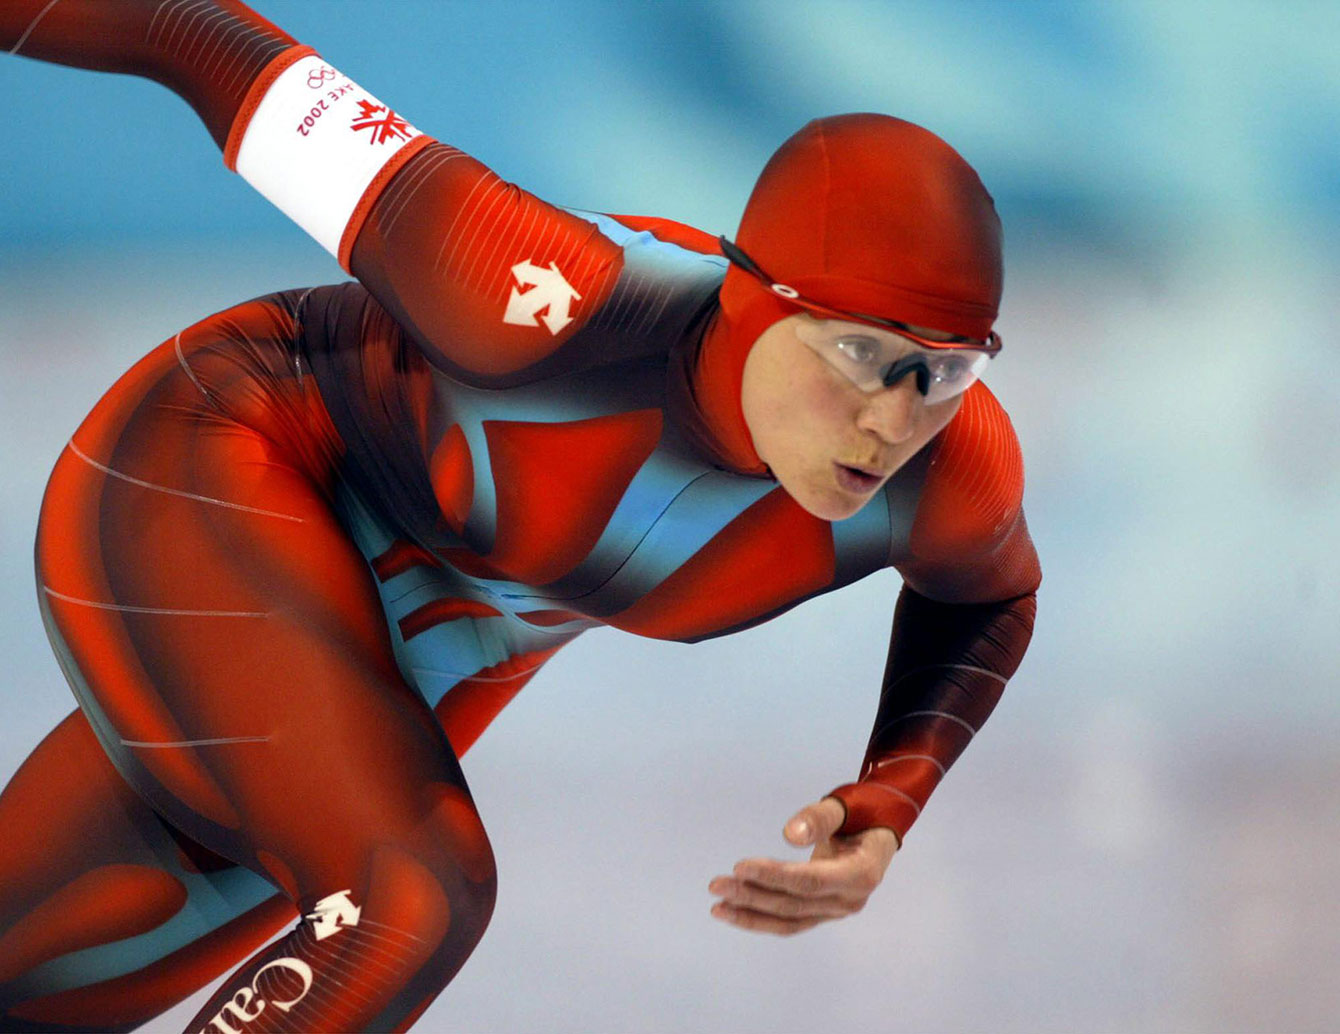 Susan Auch competes at Salt Lake City 2002. (CP PHOTO/HO/COC/Mike Ridewood)